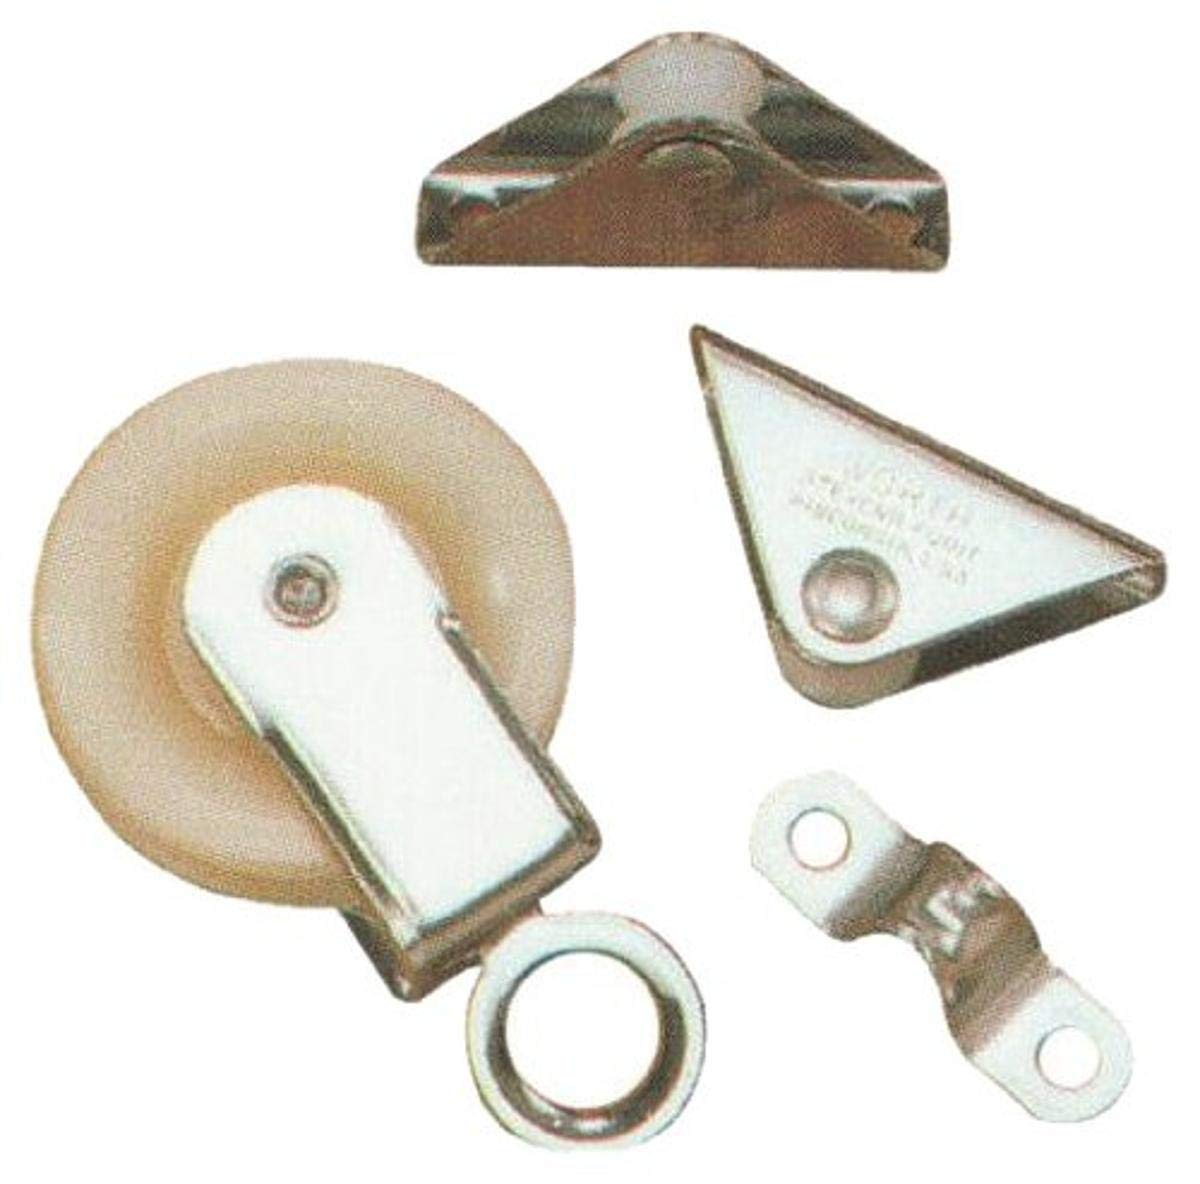 Worth Company 15100 Stainless Steel Marine Swivel Pulley and Line Guide, Silver Metallic Finish